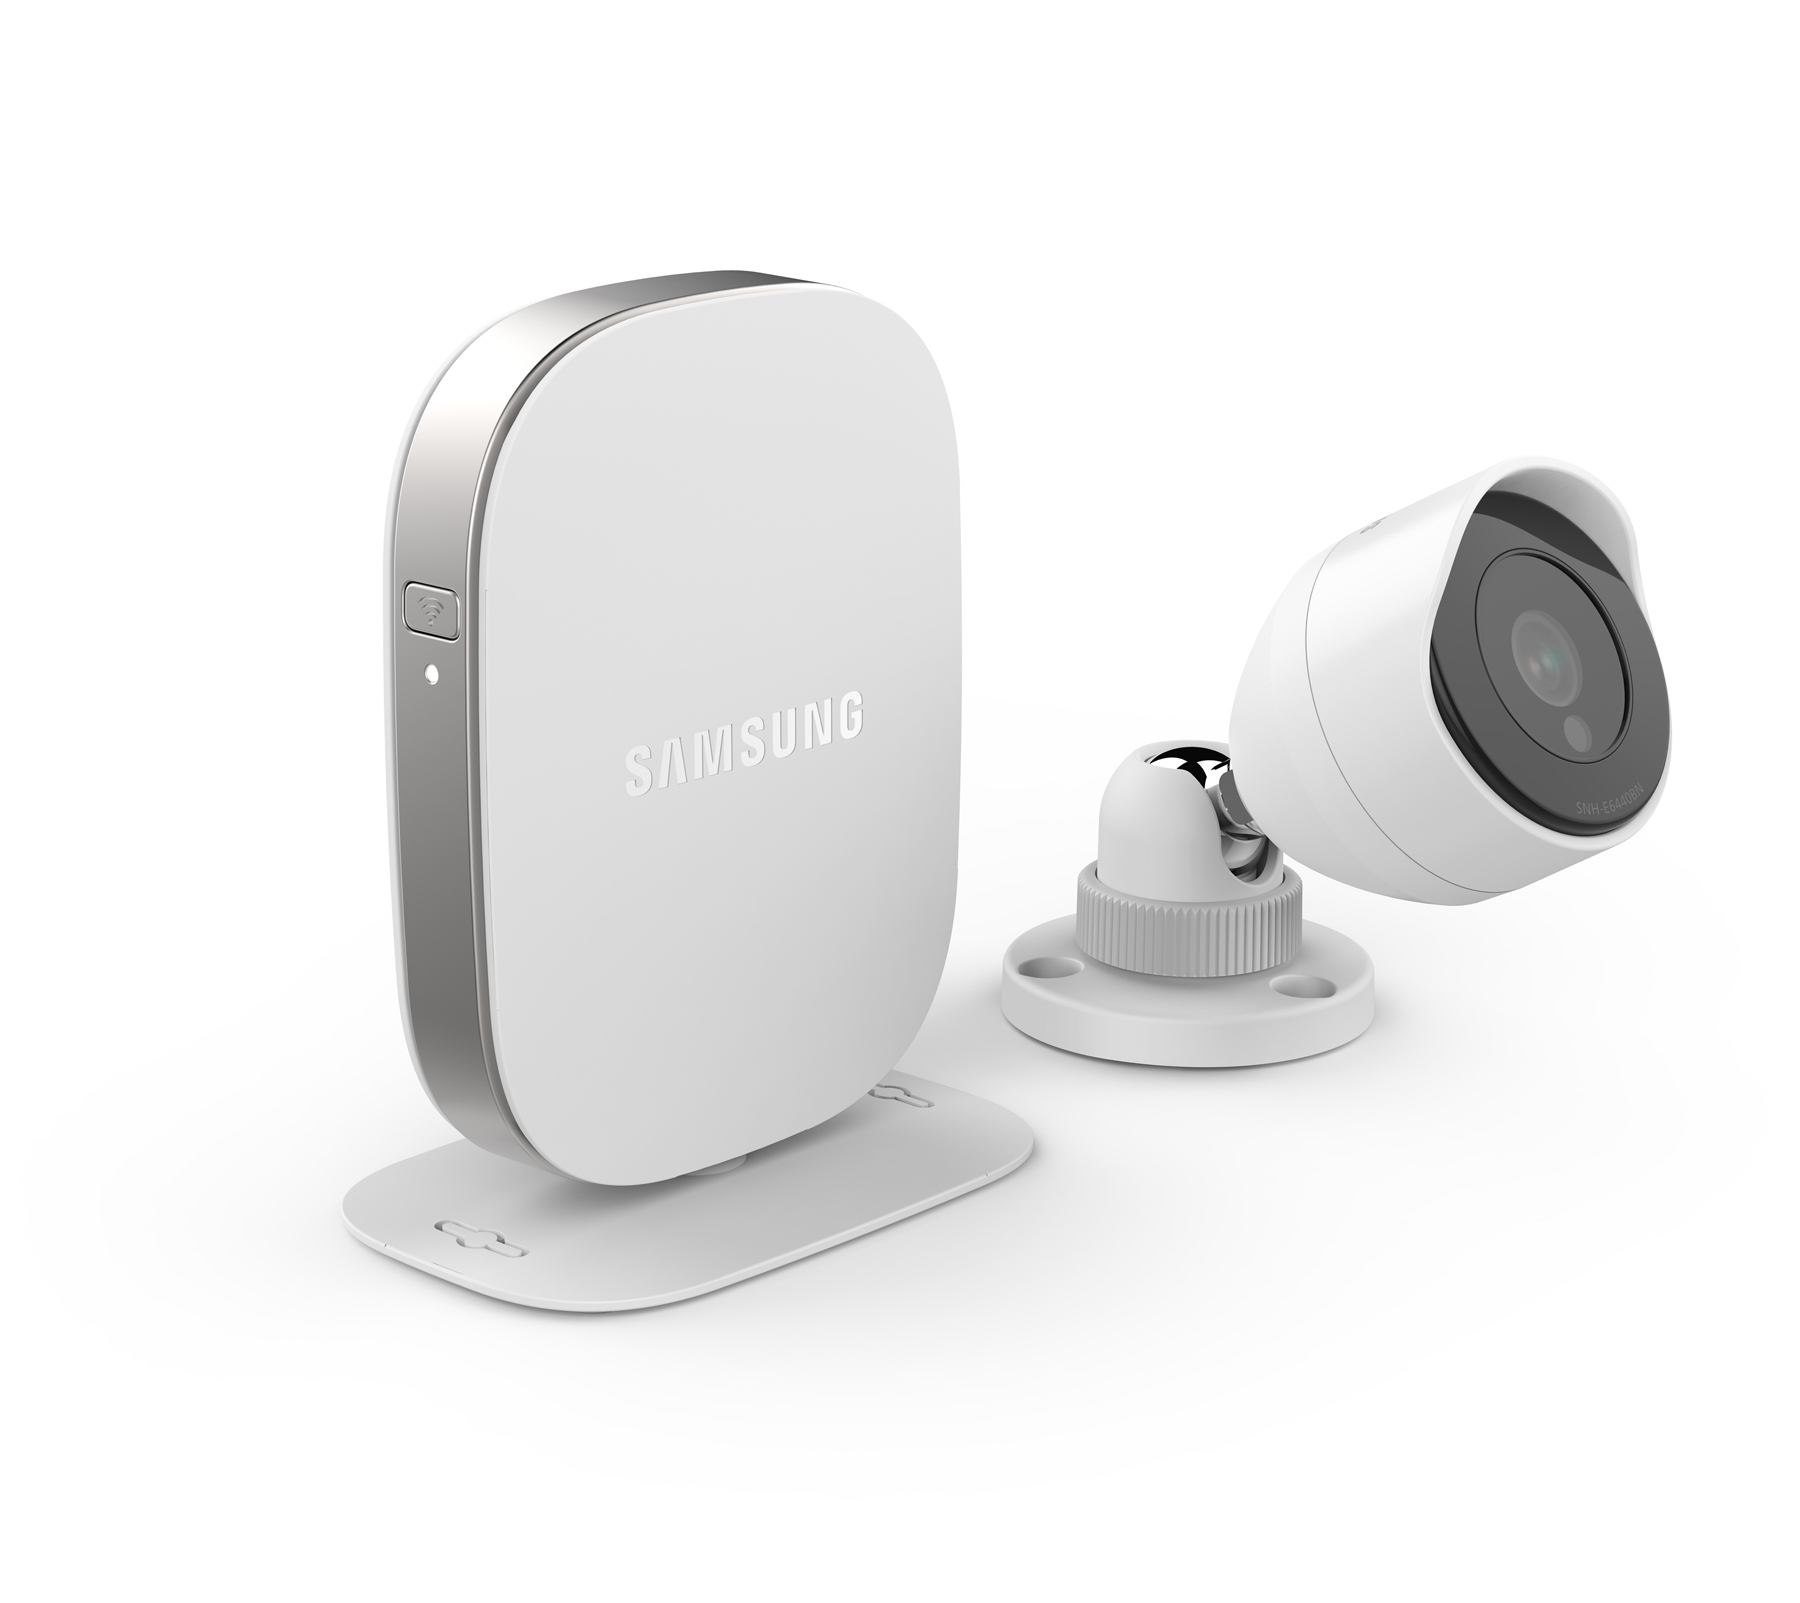 Samsung SmartCam Full HD